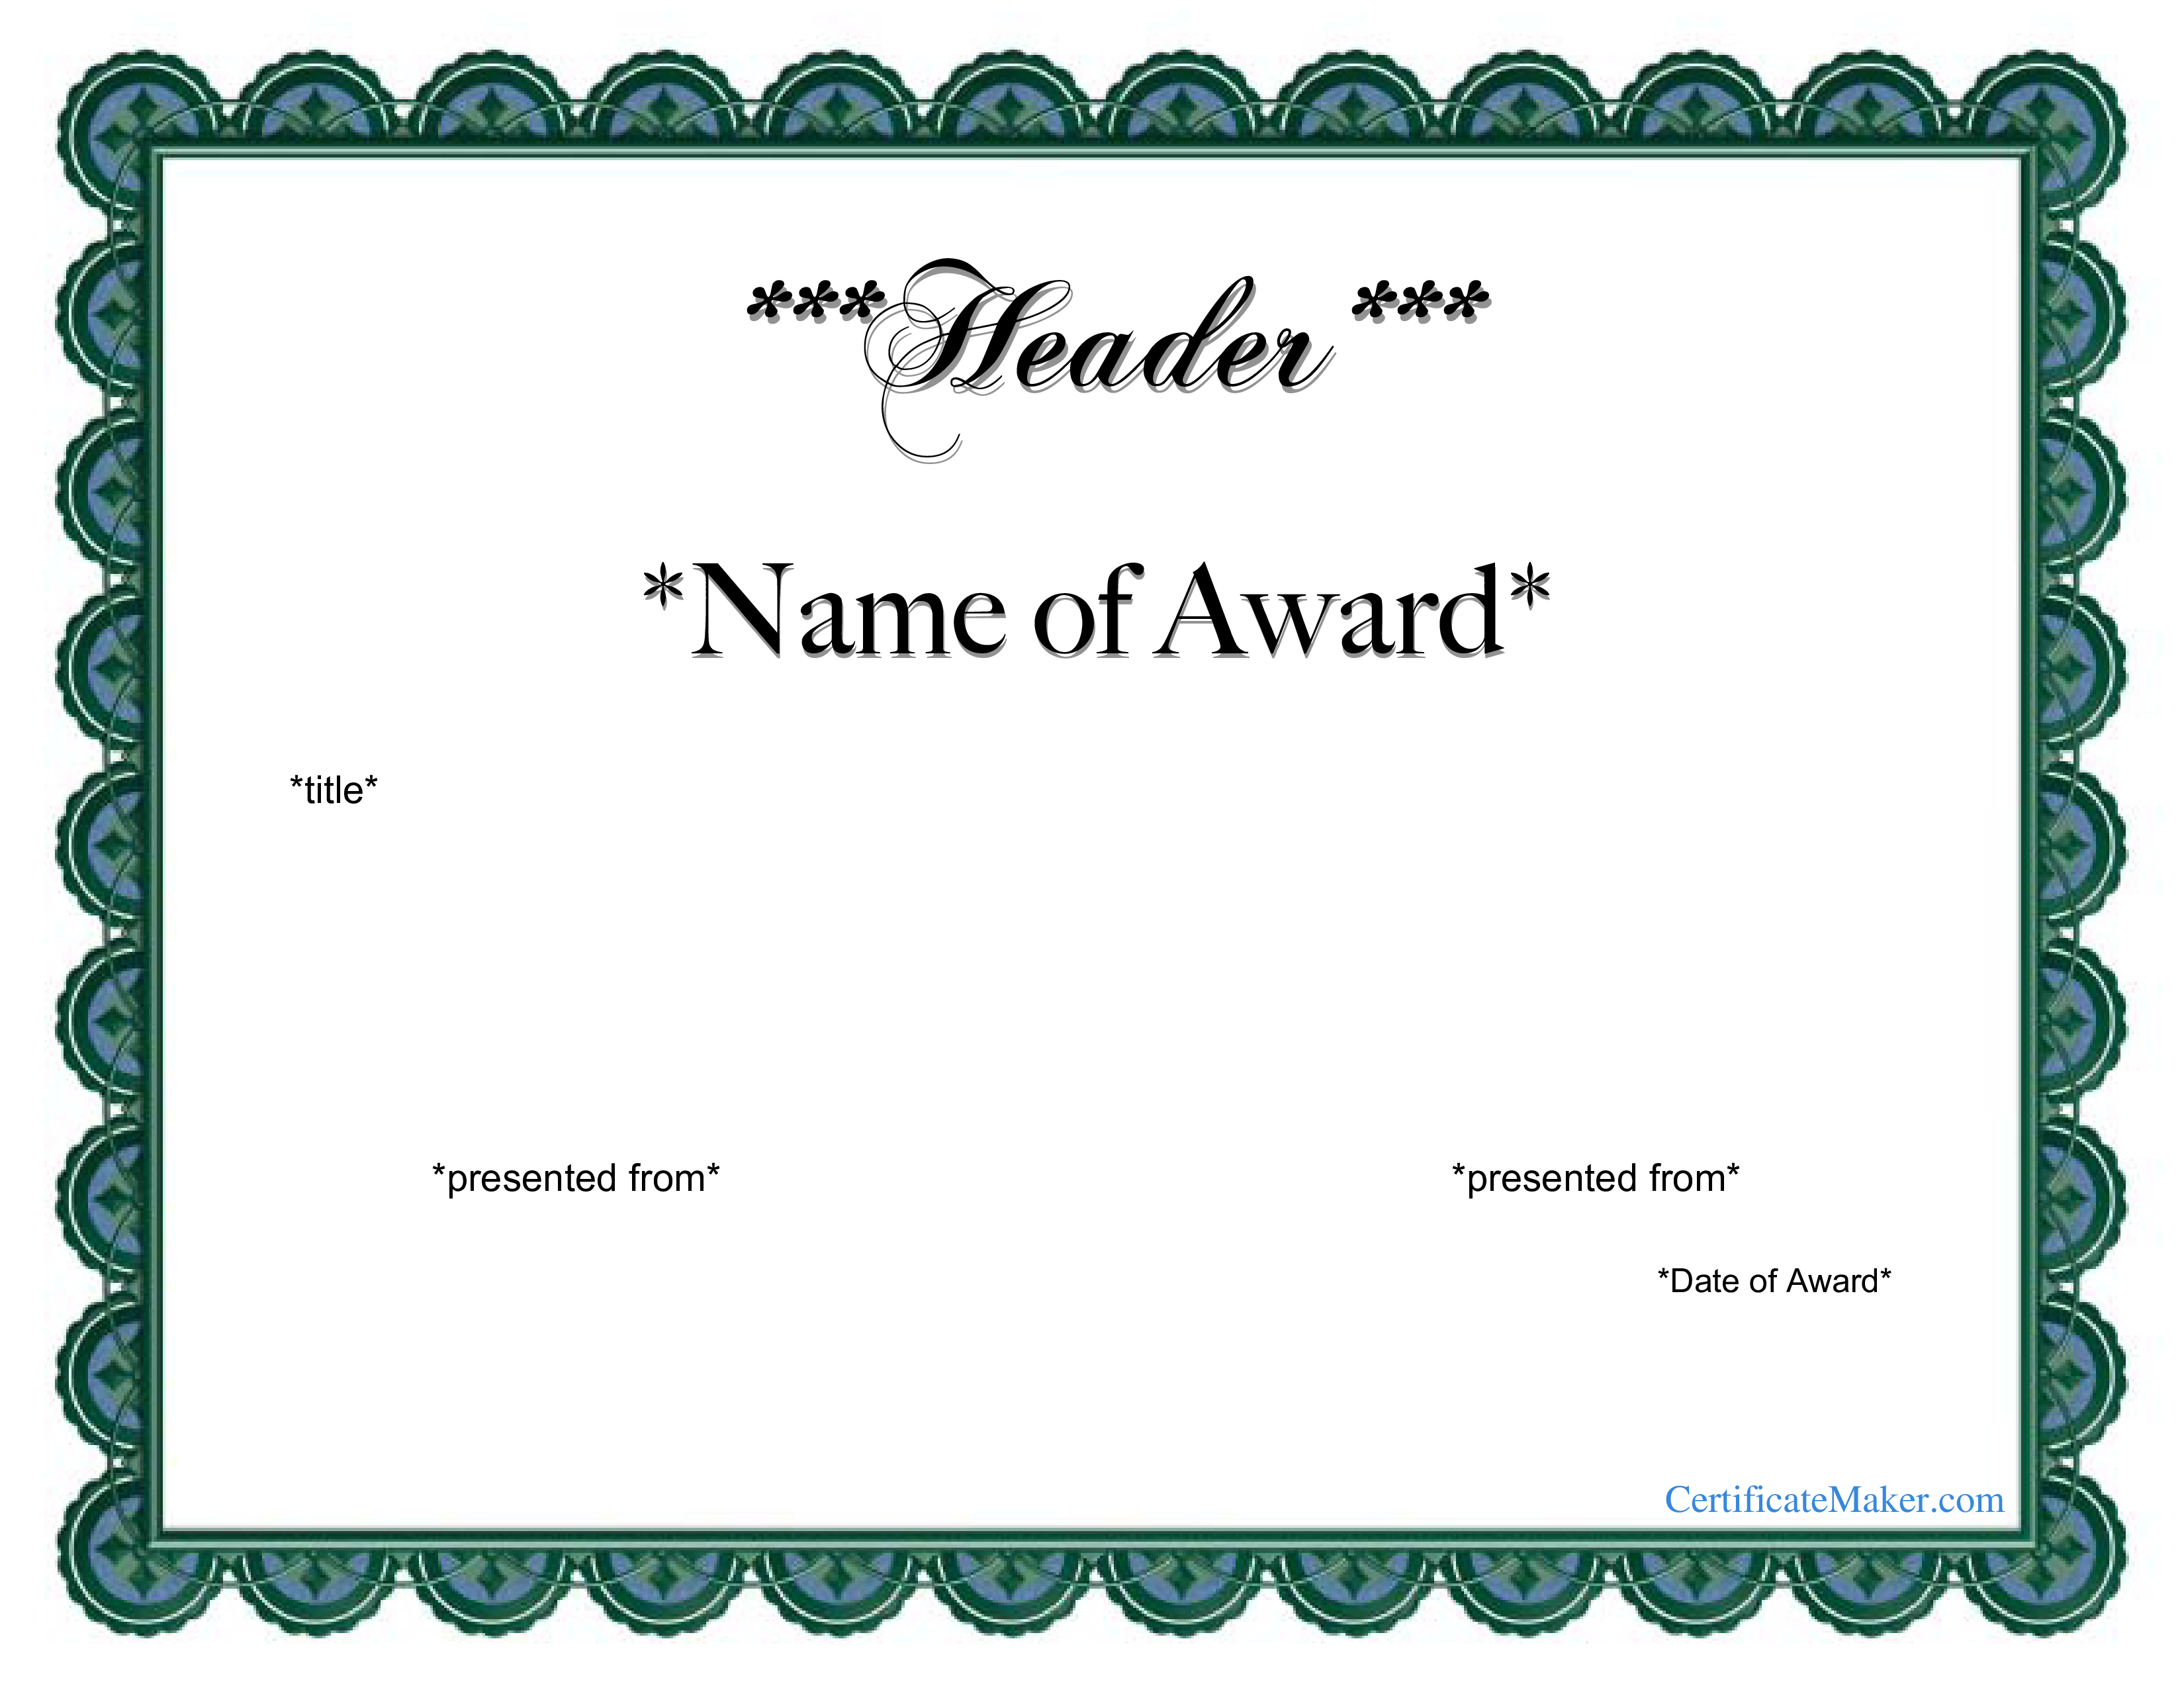 Free Printable Award Certificate | Templates At Allbusinesstemplates - Free Printable Certificate Templates